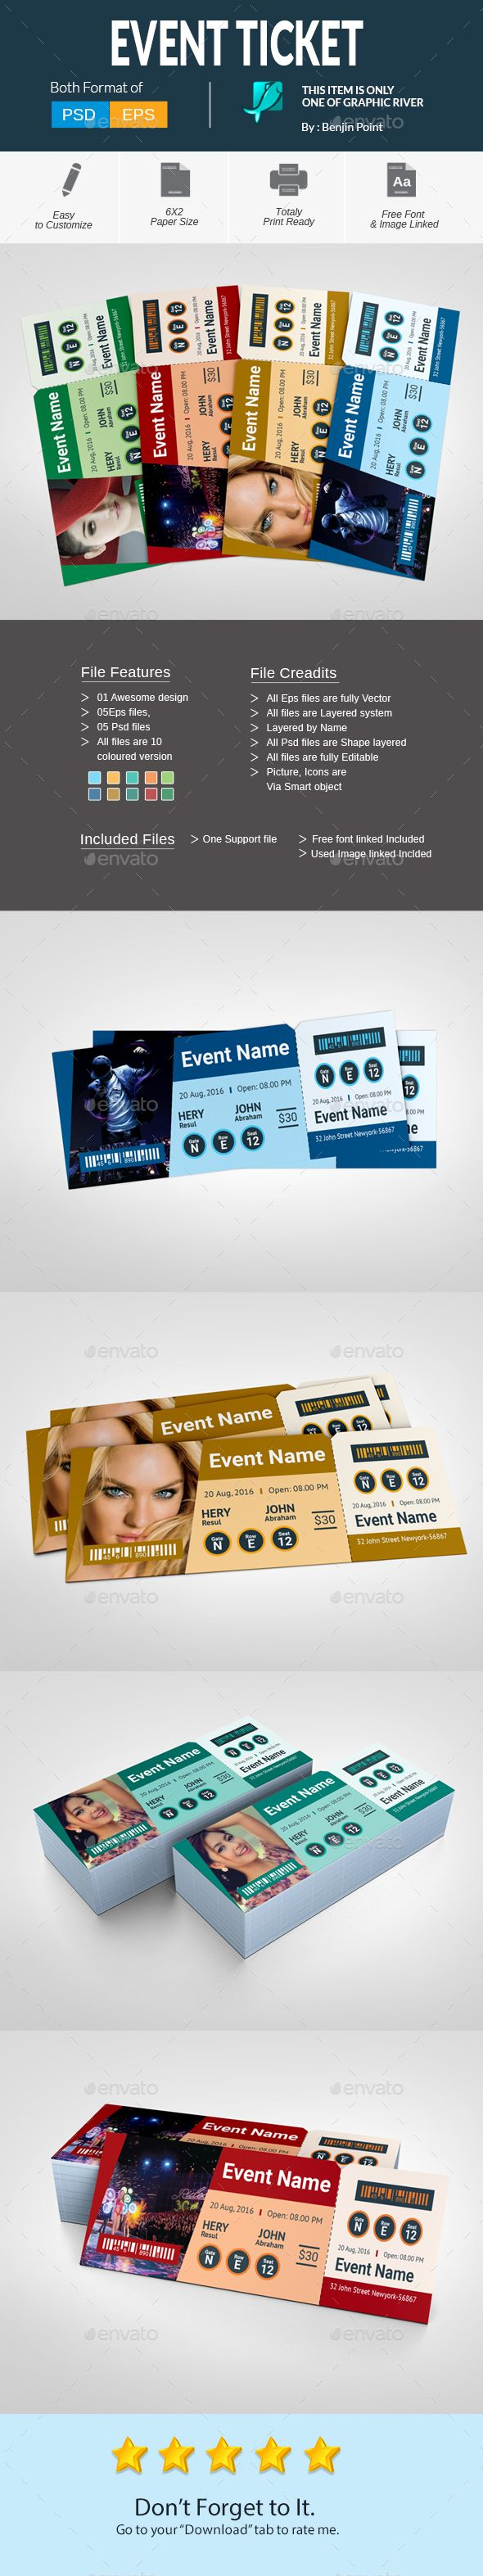 25 best ideas about event ticket template on pinterest event tickets event ticket printing. Black Bedroom Furniture Sets. Home Design Ideas